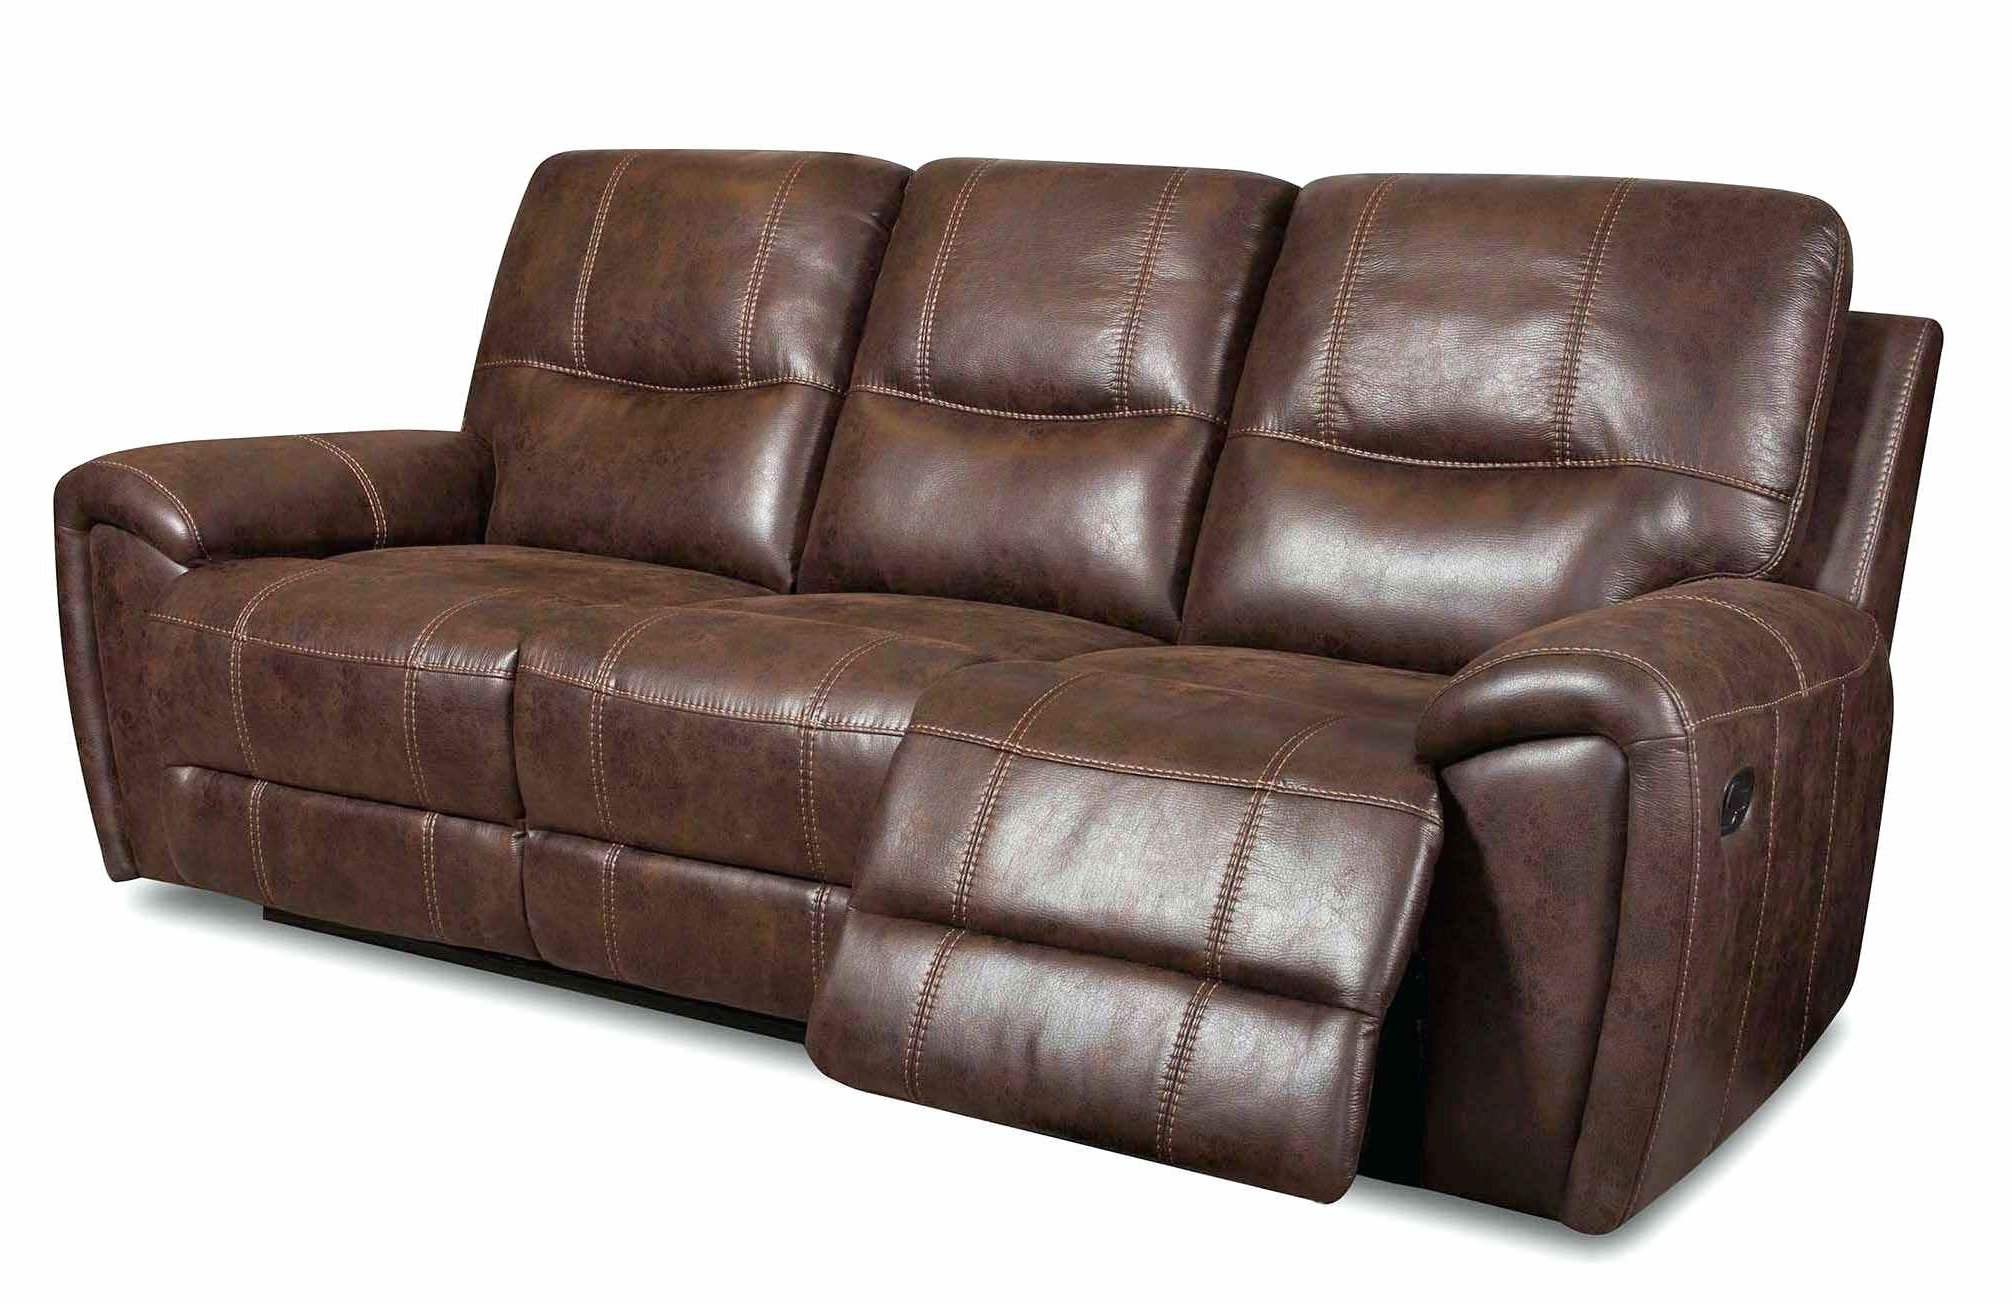 Kijiji London Sectional Sofas With Most Current Reclining Sofas Sofa Leather Brown Recliner For Sale In London (Gallery 10 of 20)